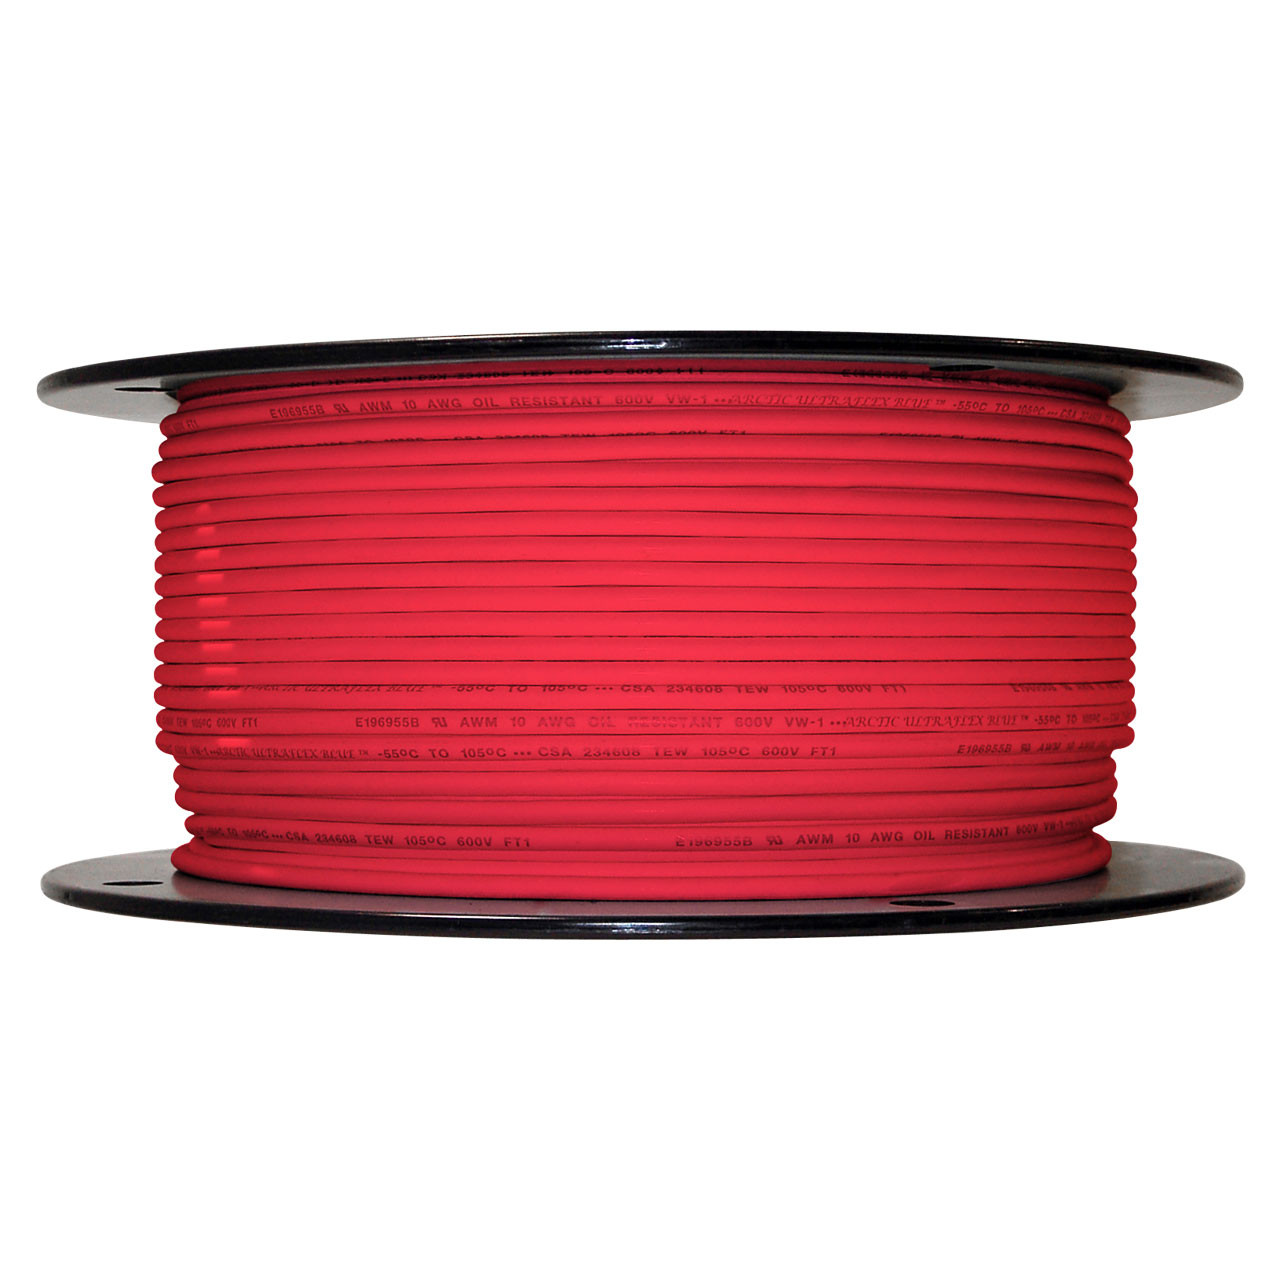 10 AWG Arctic Ultraflex Blue Single Conductor Wire 100% copper tinned fine strand, 600v applications, 500 foot spool Red